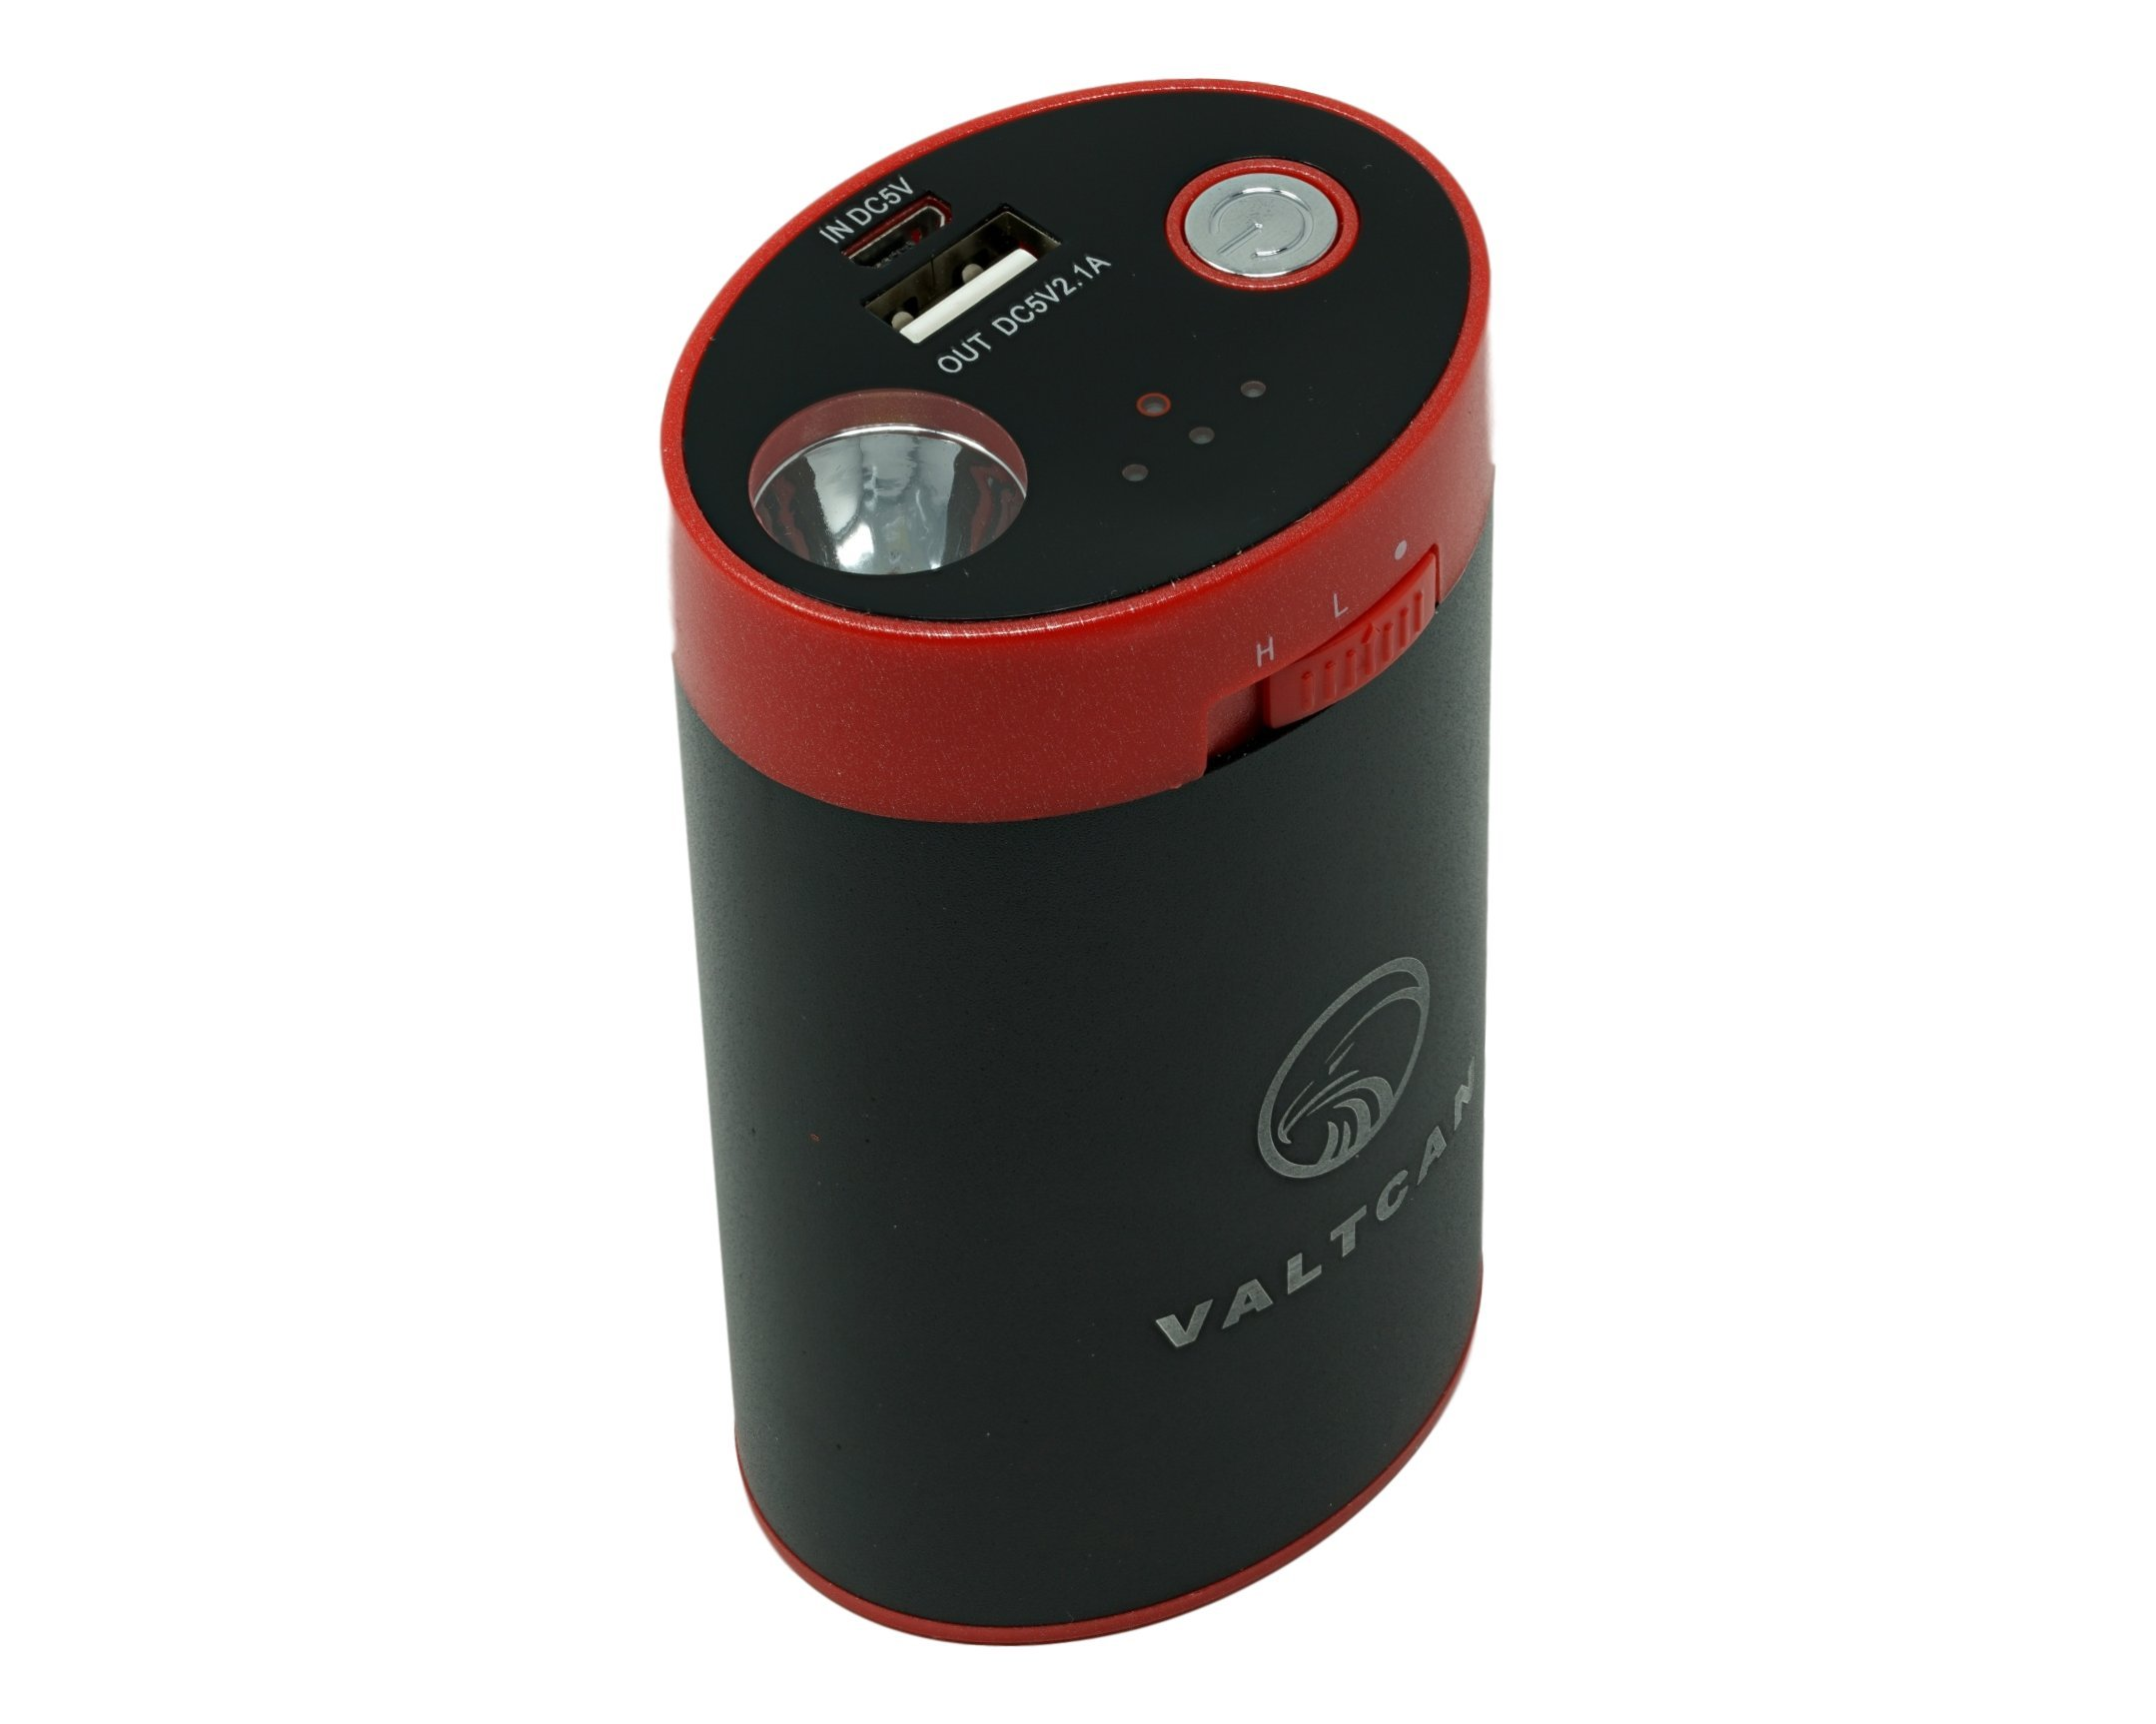 Valtcan Hunting Hand Warmer Apple iphone iPad Mobile device Charger and LED Light with 8800mAH Power Capacity and 3 Heat Settings